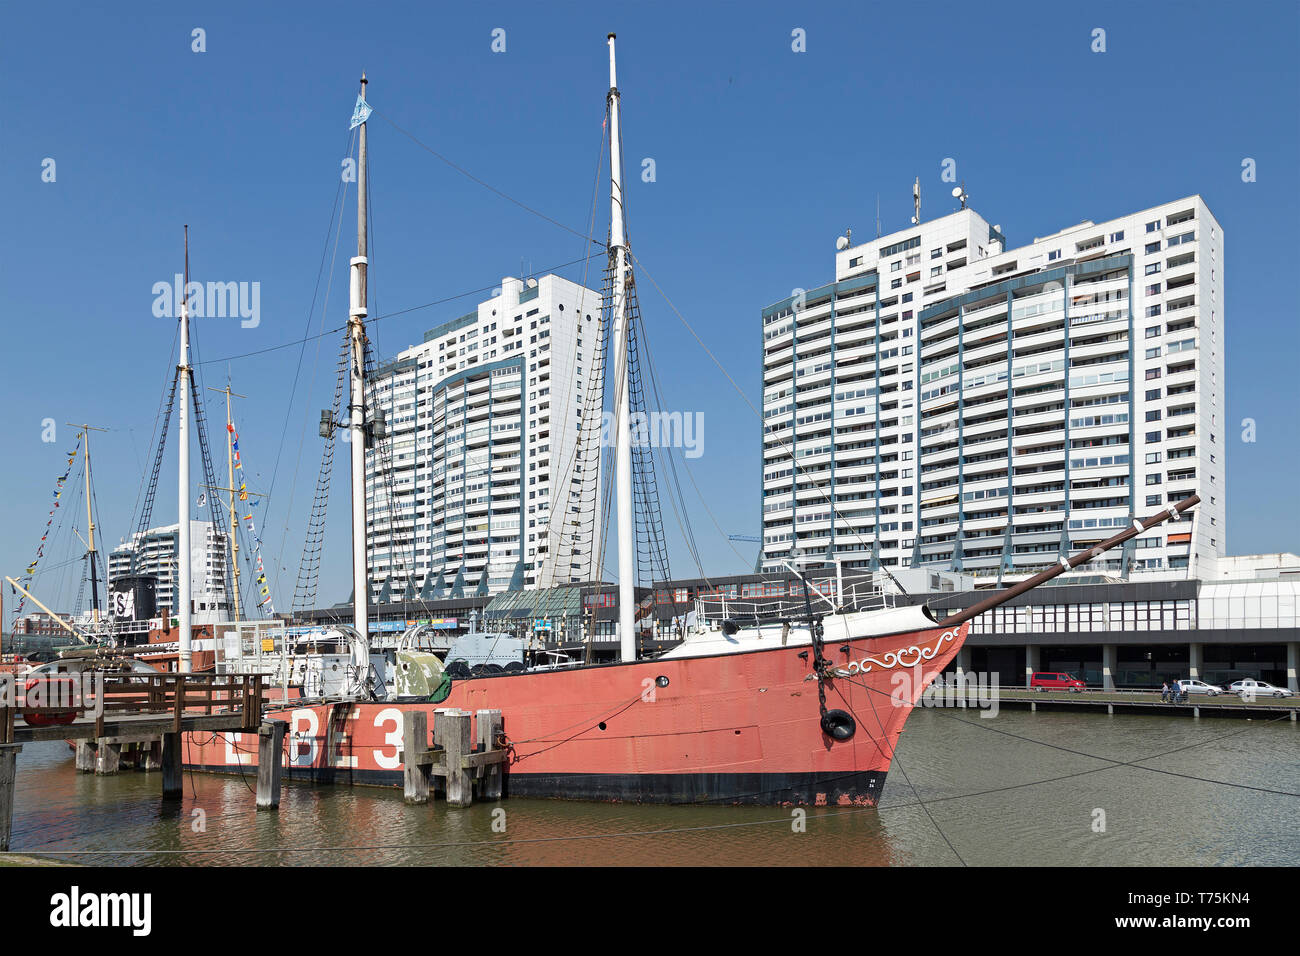 fire ship Elbe 3, museum-harbour and Columbus Center, Bremerhaven, Bremen, Germany Stock Photo